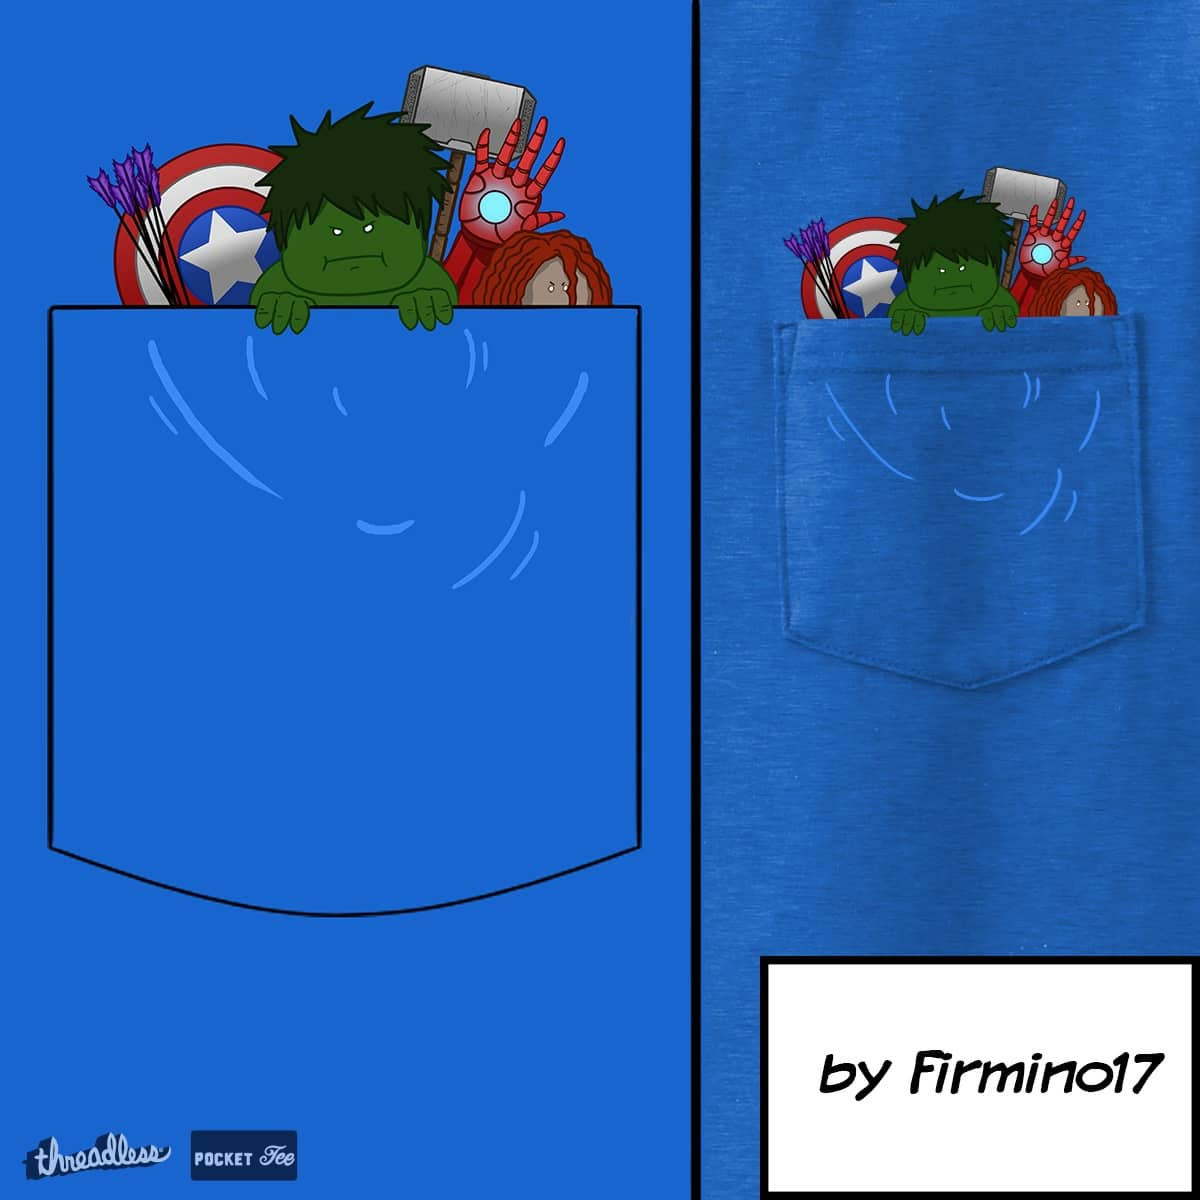 Avengers in a pocket by firmino17 on Threadless